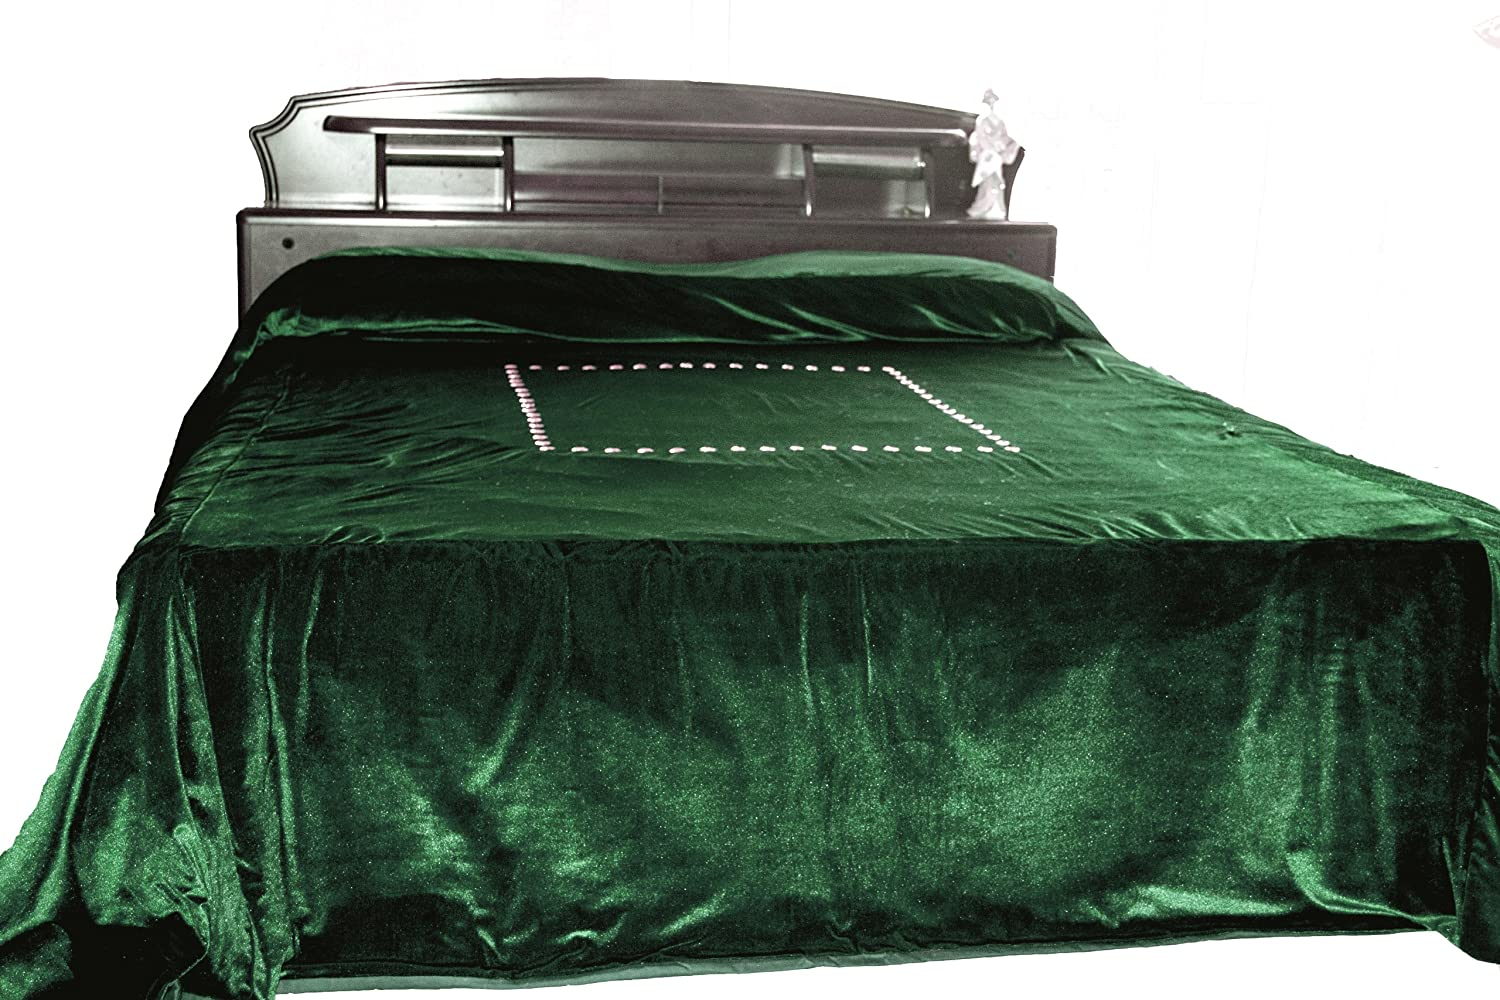 Amazon.com: Amore Beaute Handcrafted Custom Luxury Emrald Green Bed Cover  With Gold Sequin Embroidery   Couture Bedspread In Luxe Velvet   Bedding  King Size ...